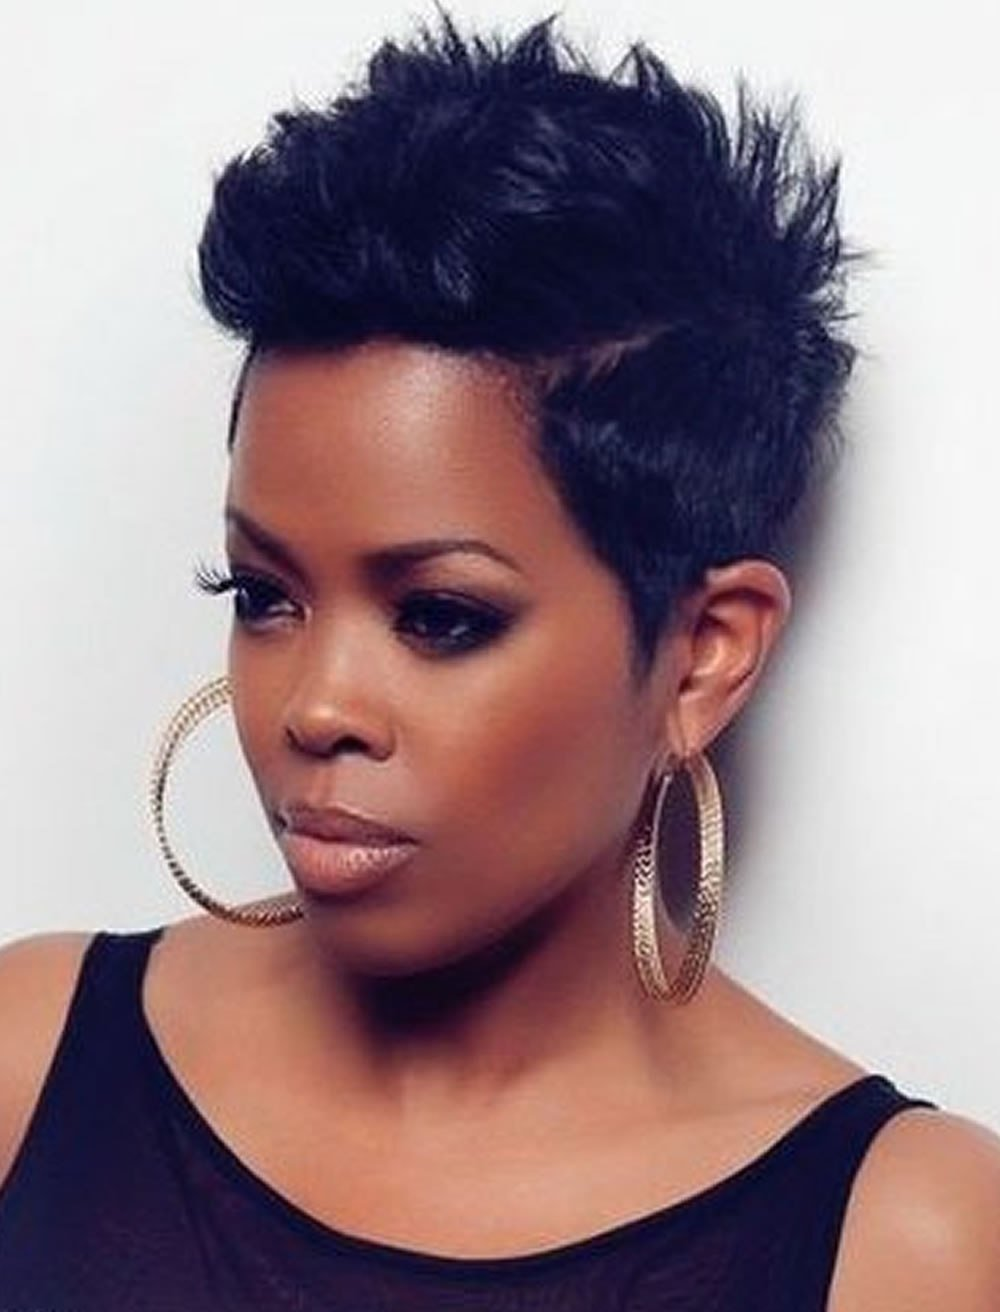 The Best Pixie Short Hairstyles For Black Women 2018 2019 – Hairstyles Pictures